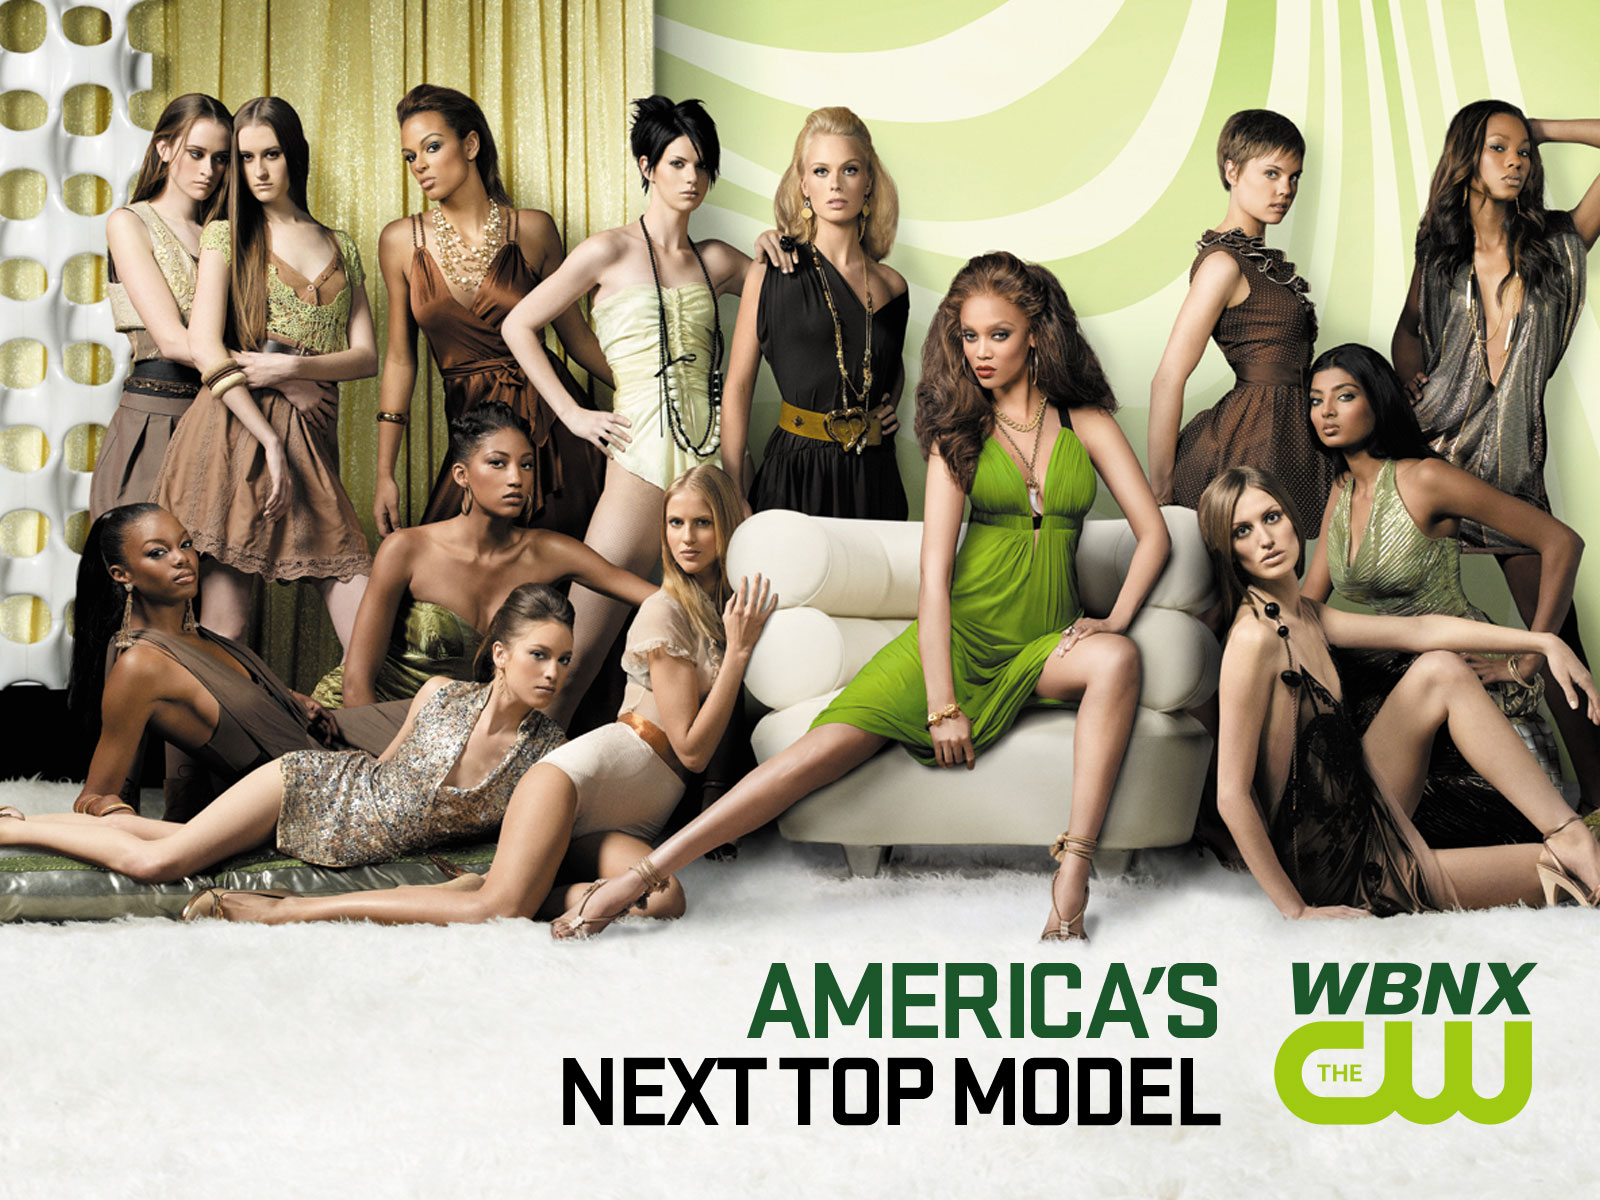 America's Next Top Model Cycle 22 – 2014 / 2015 Audition Schedule